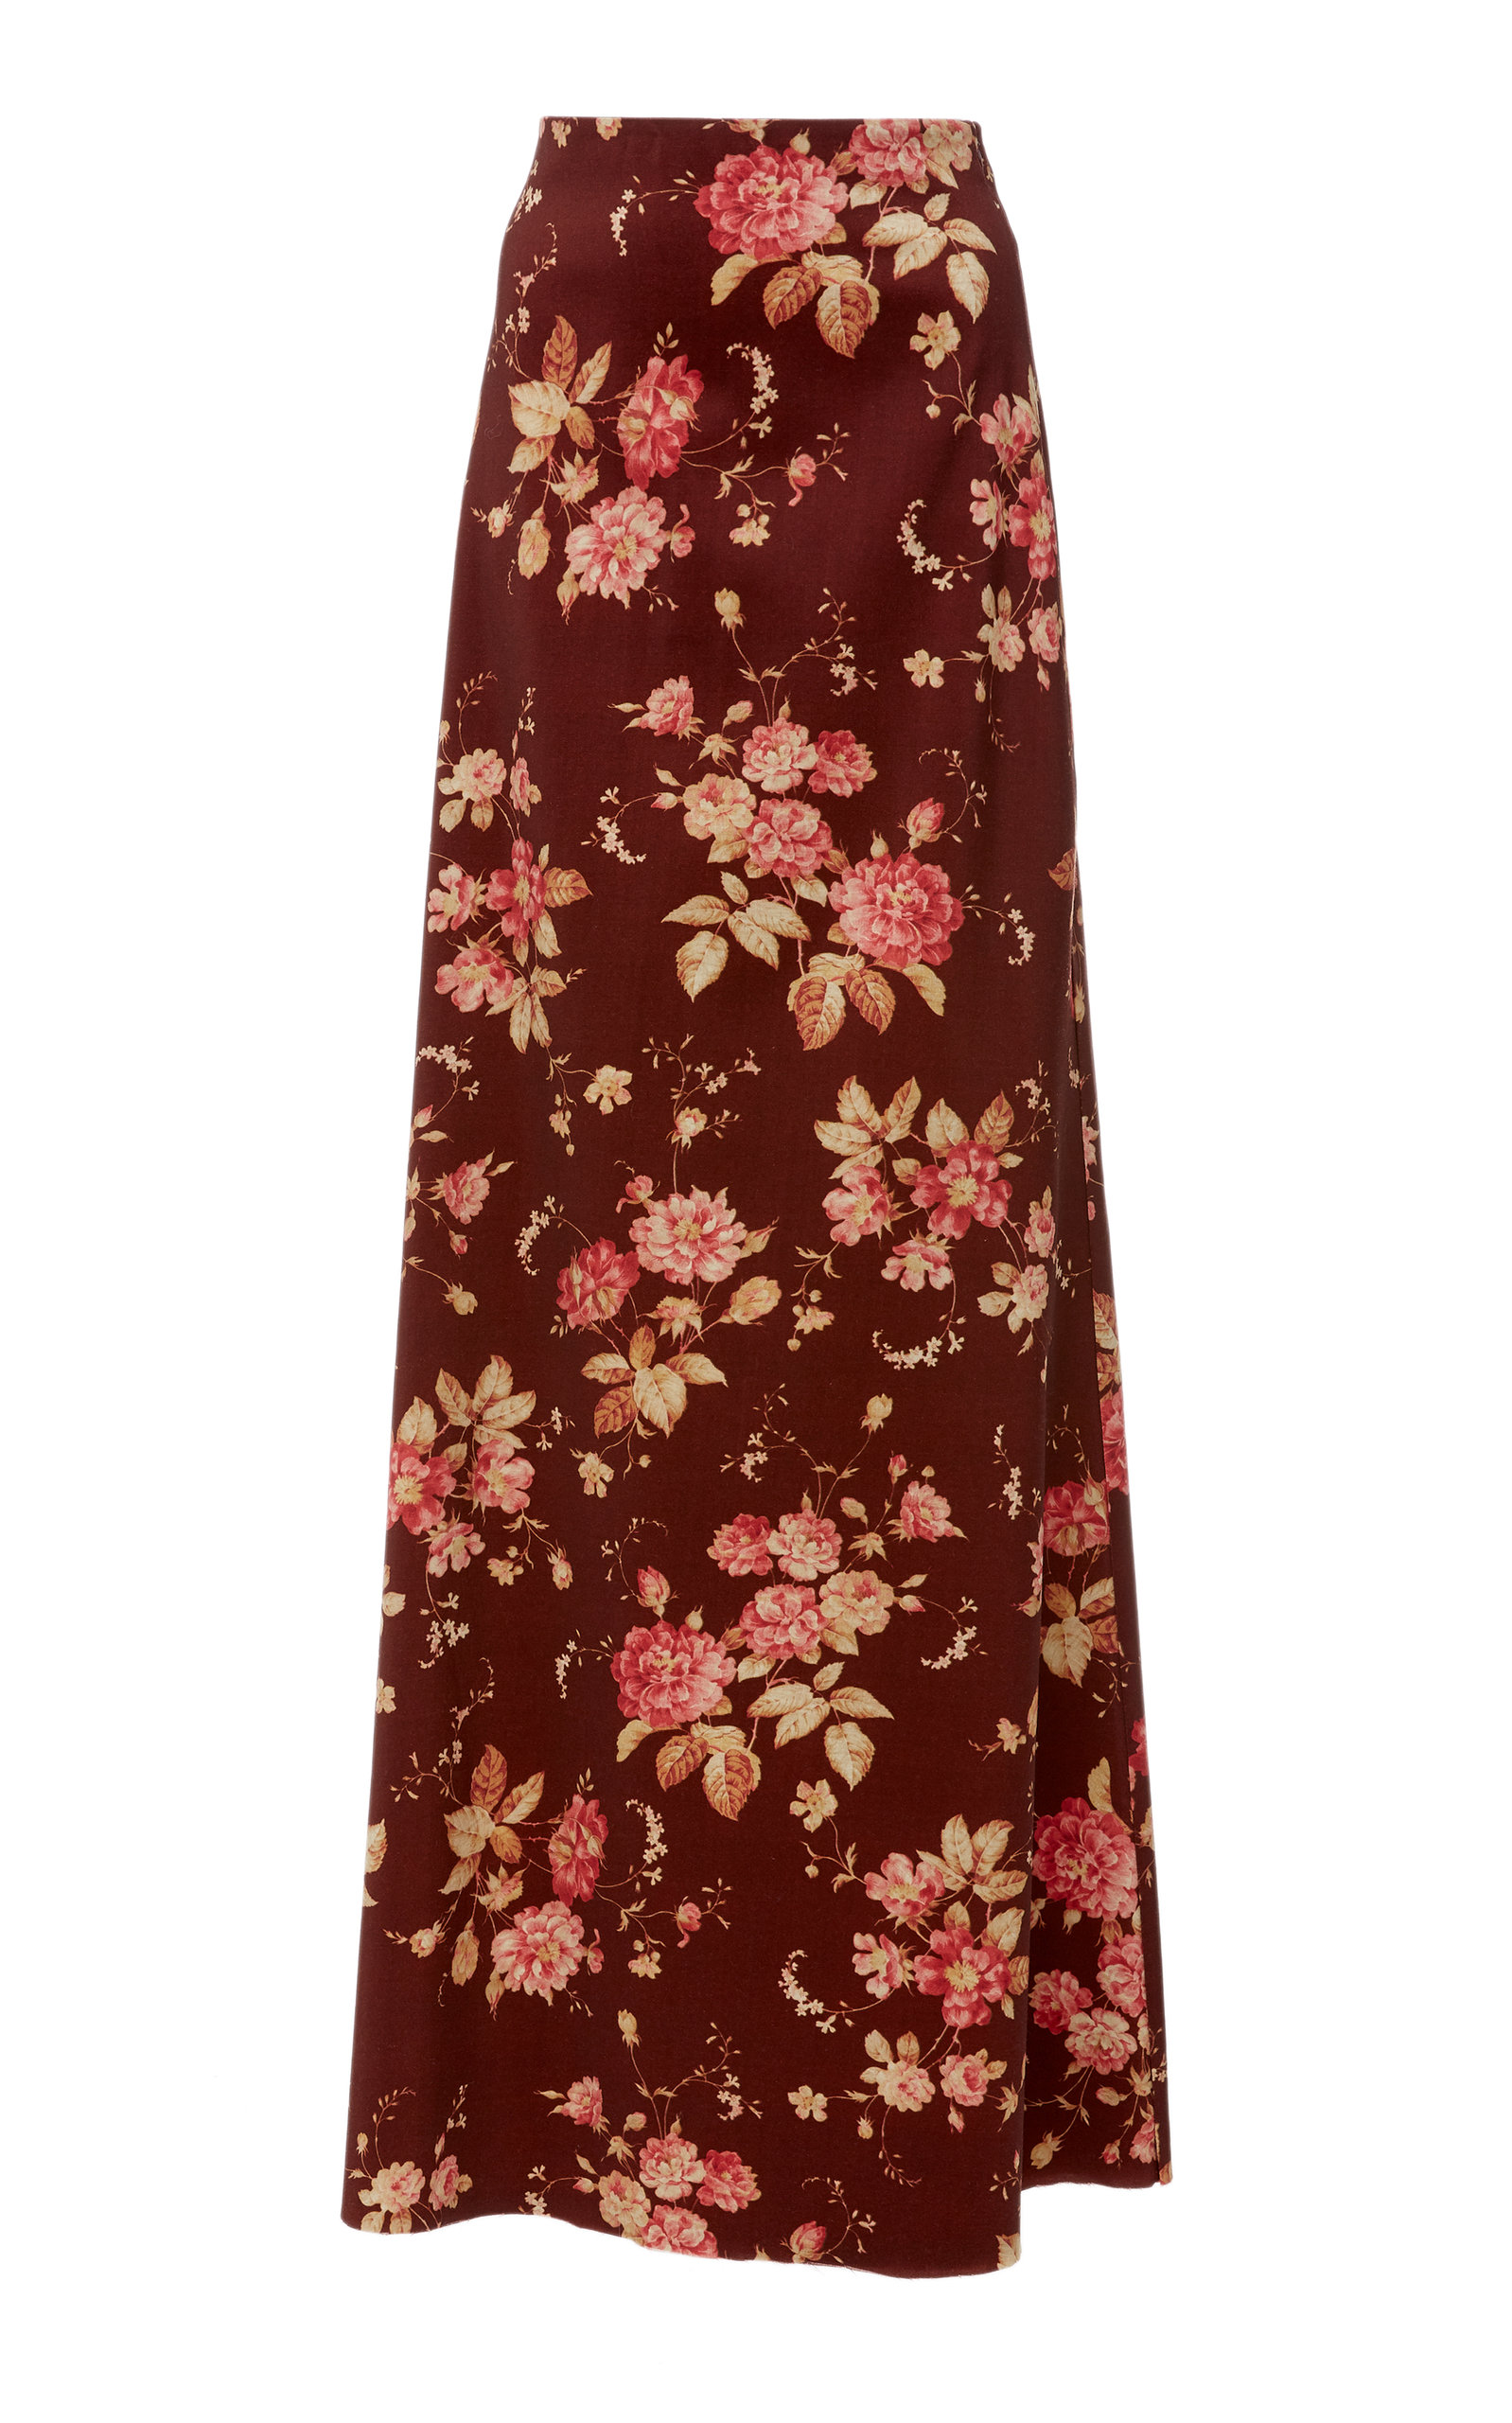 Floral-Print Wool-Blend Twill Maxi Skirt in Burgundy